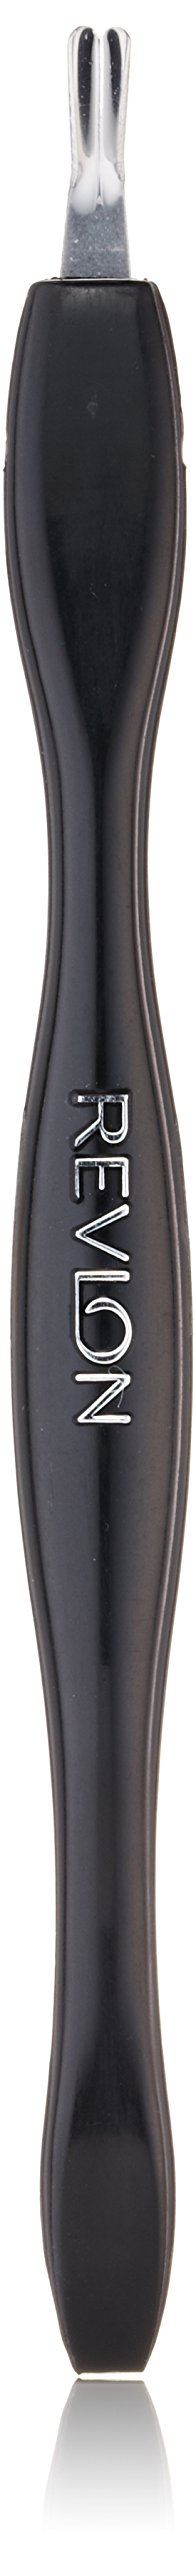 Revlon Cuticle Trimmer with Cap, 1 Count by Revlon